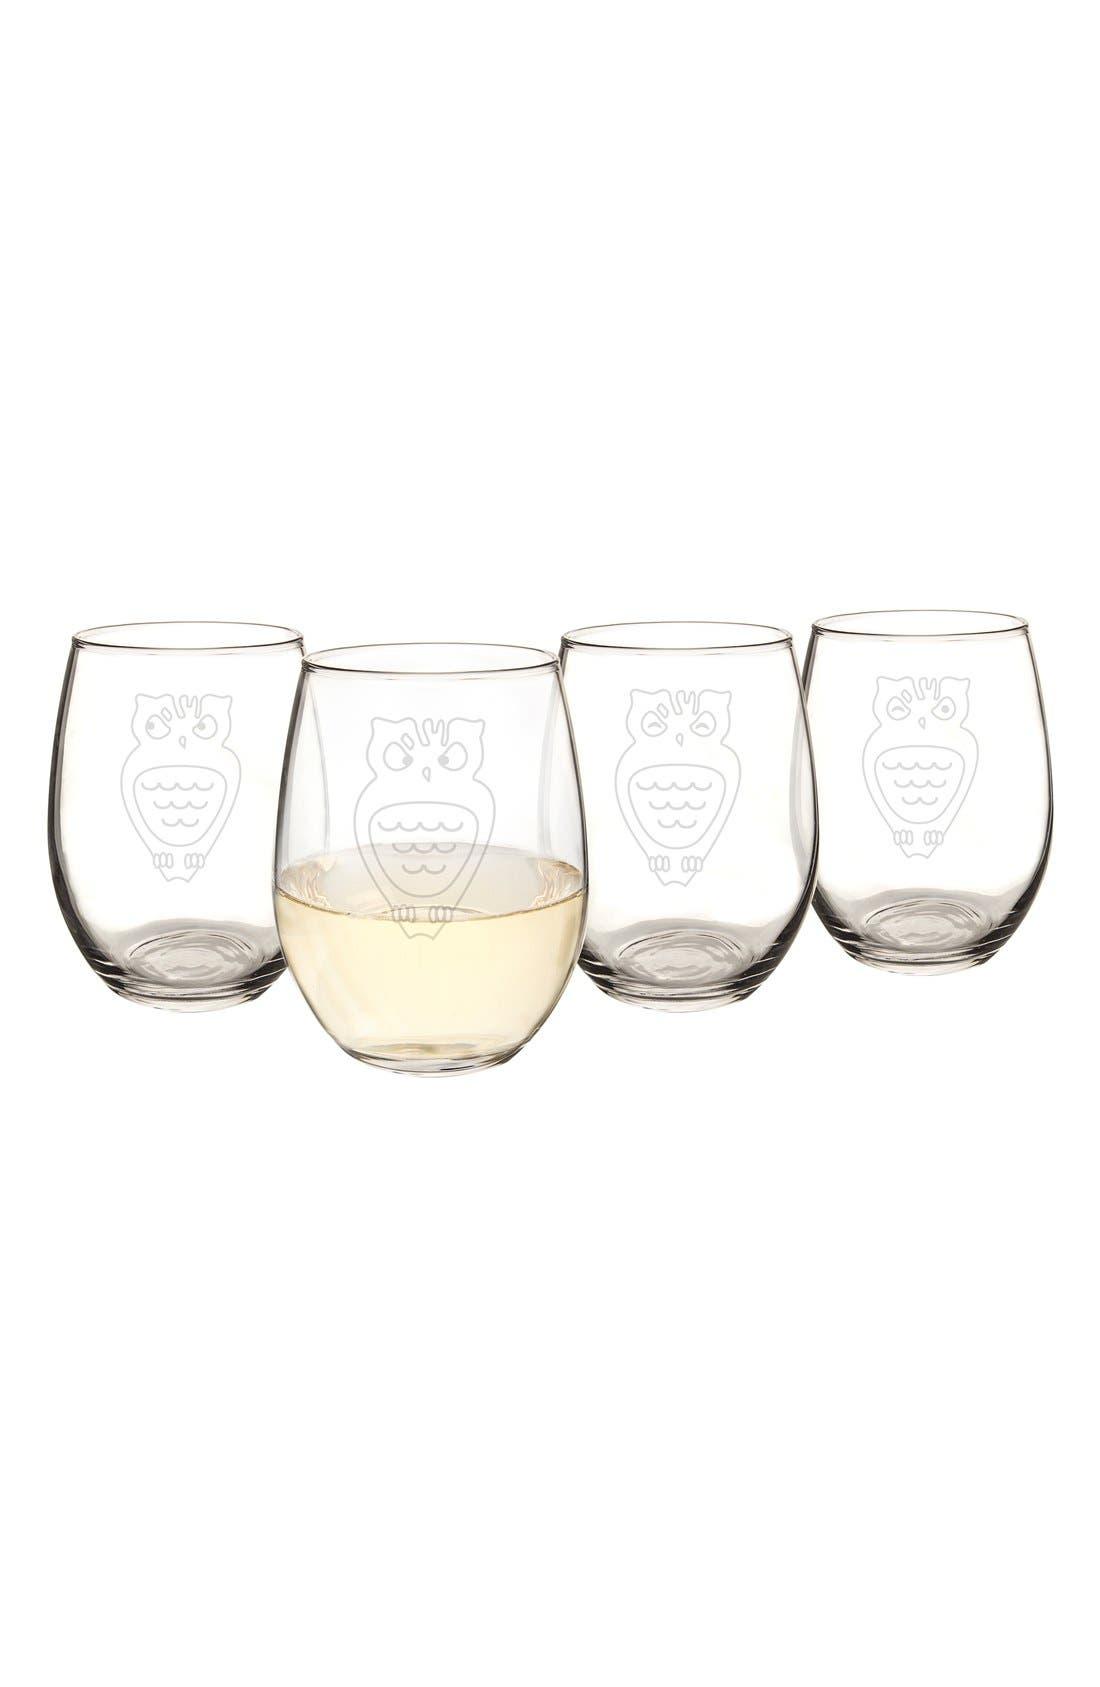 Owl Set of 4 Stemless Wine Glasses,                             Alternate thumbnail 3, color,                             CLEAR